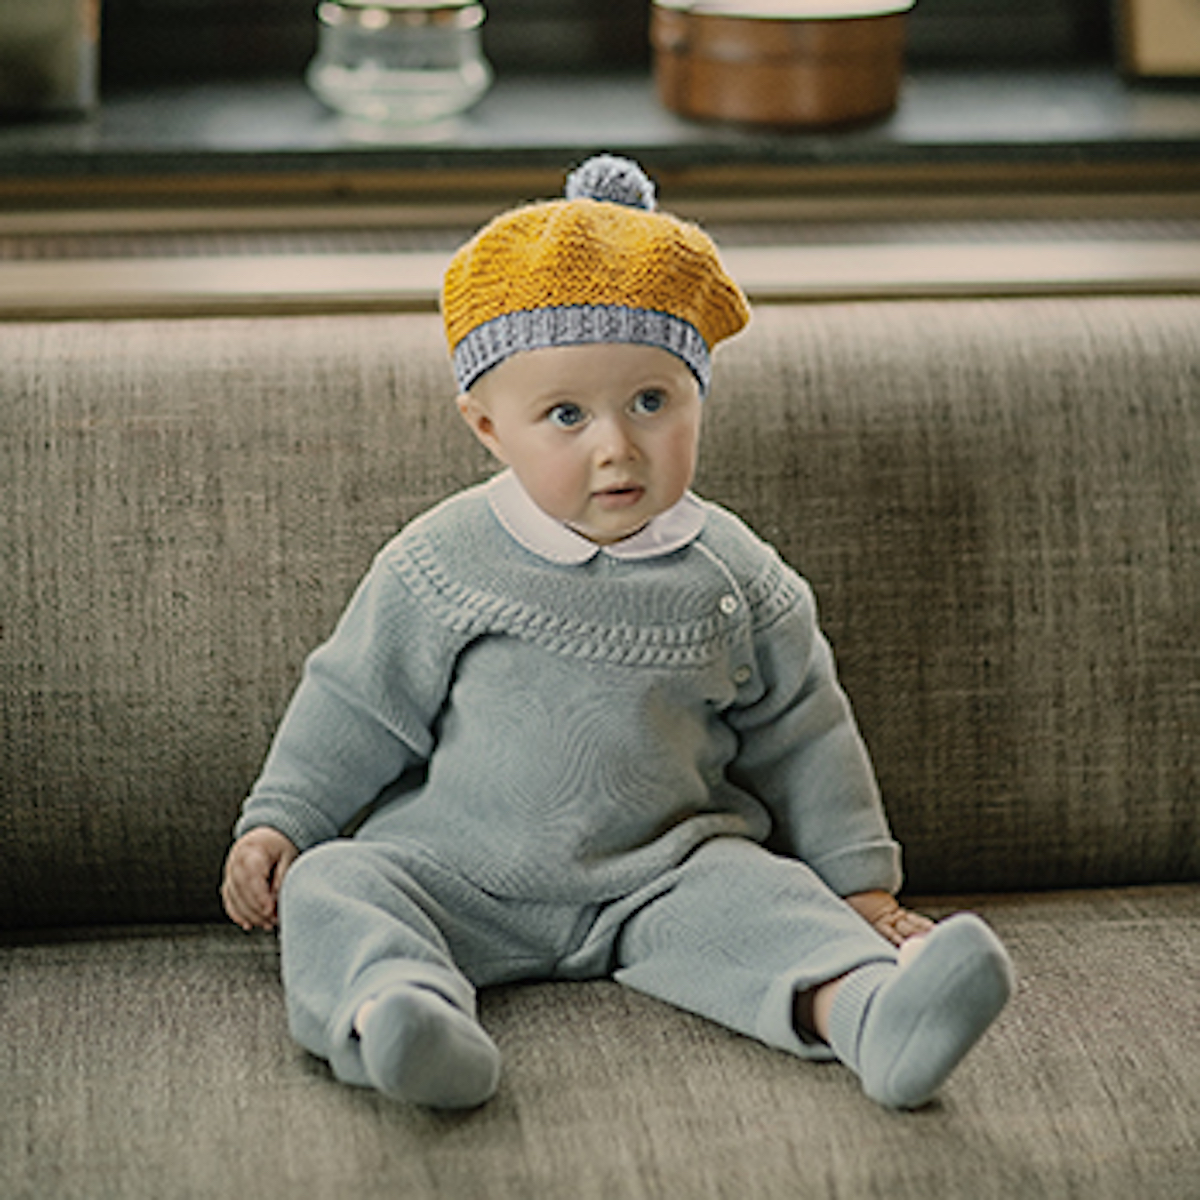 baby in tartine et chocolate knit outfit and hat